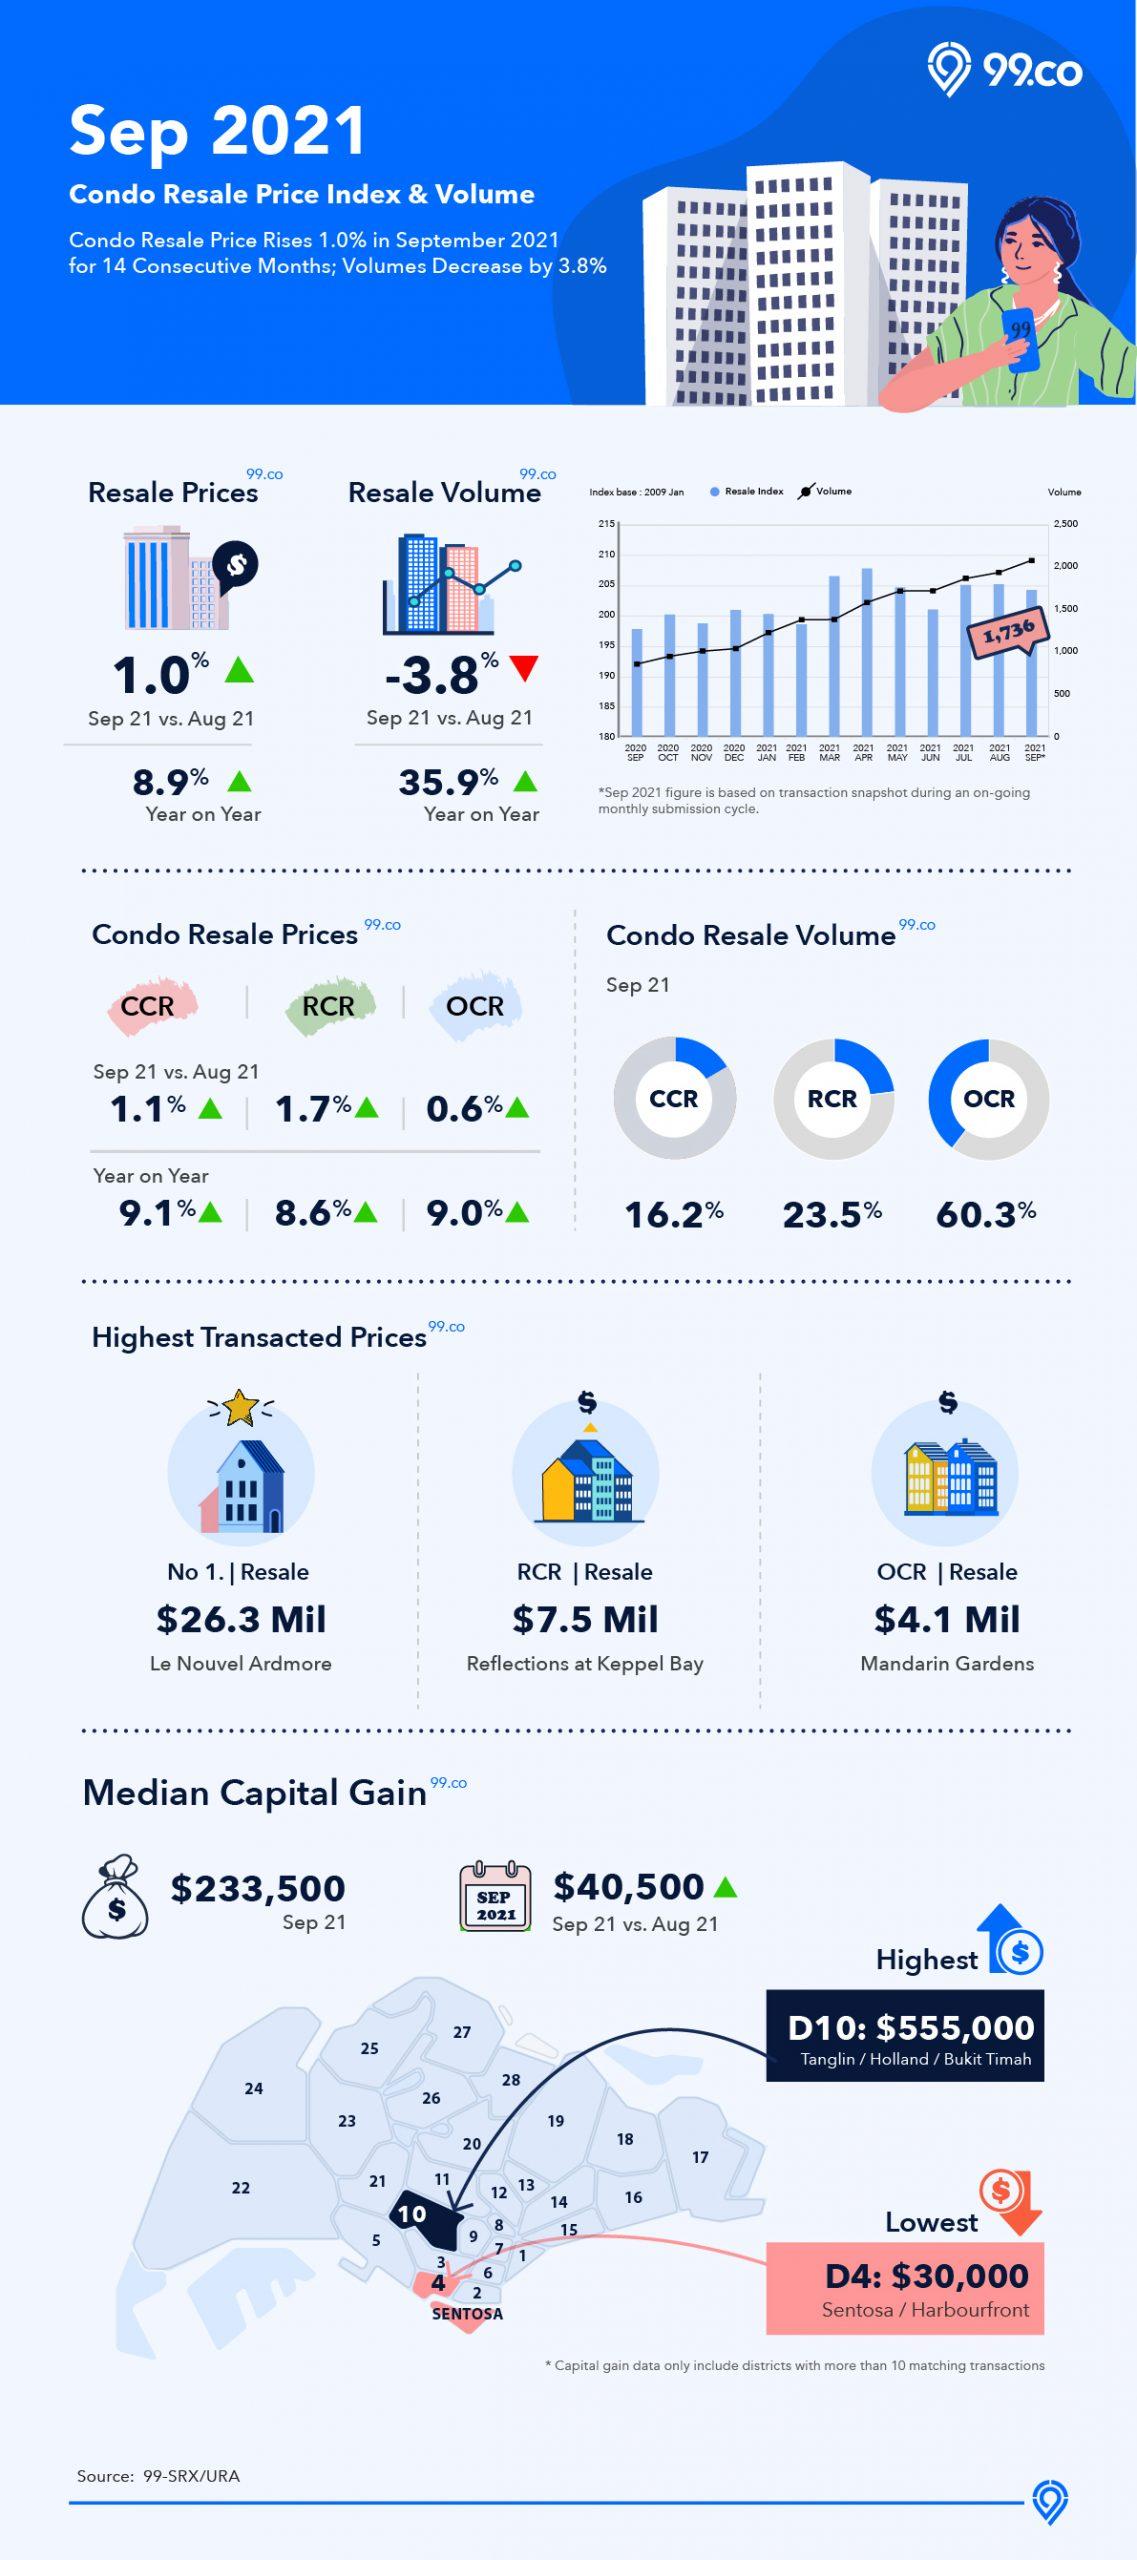 Infographic on condo resale market in September 2021